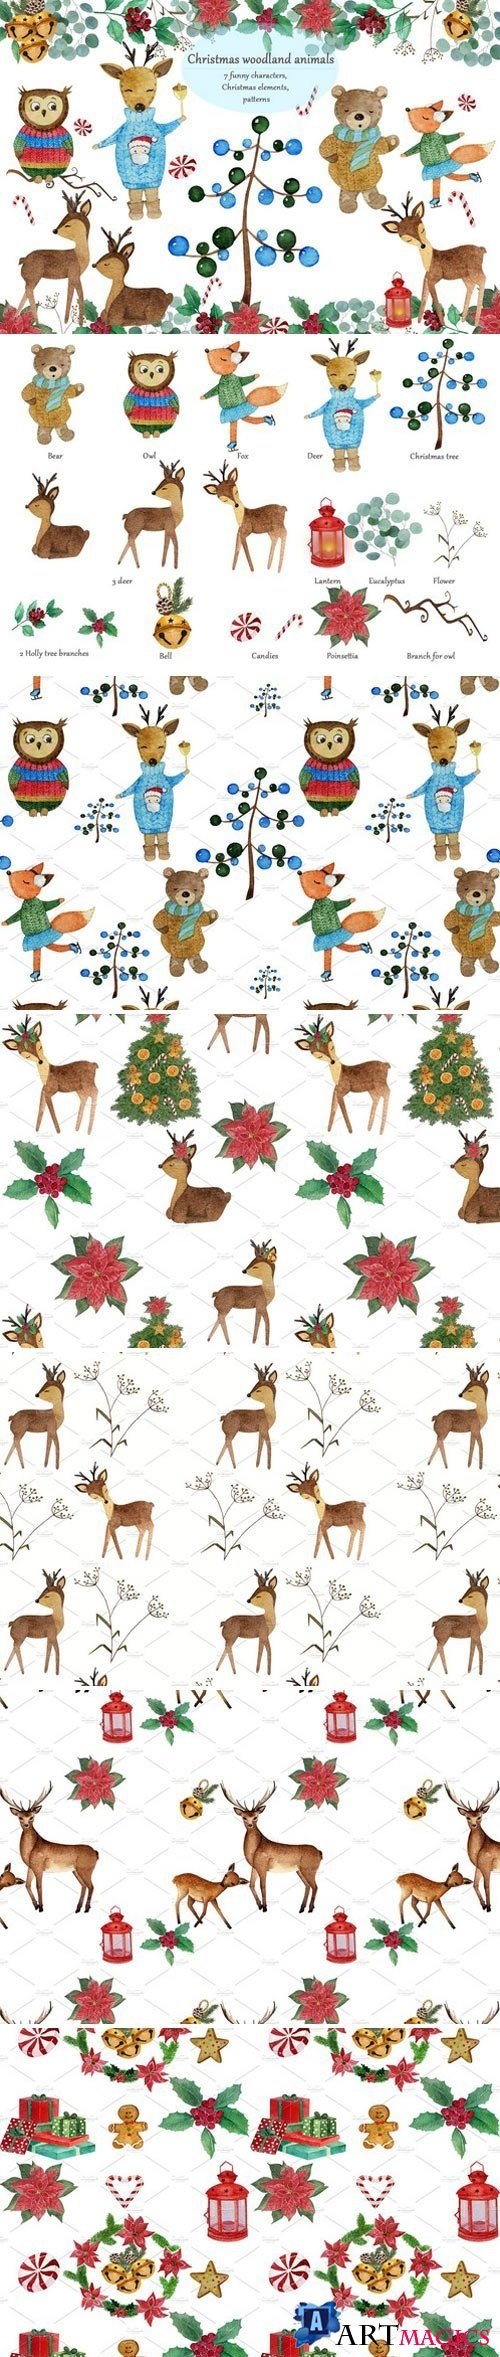 Christmas woodland animals 2072940